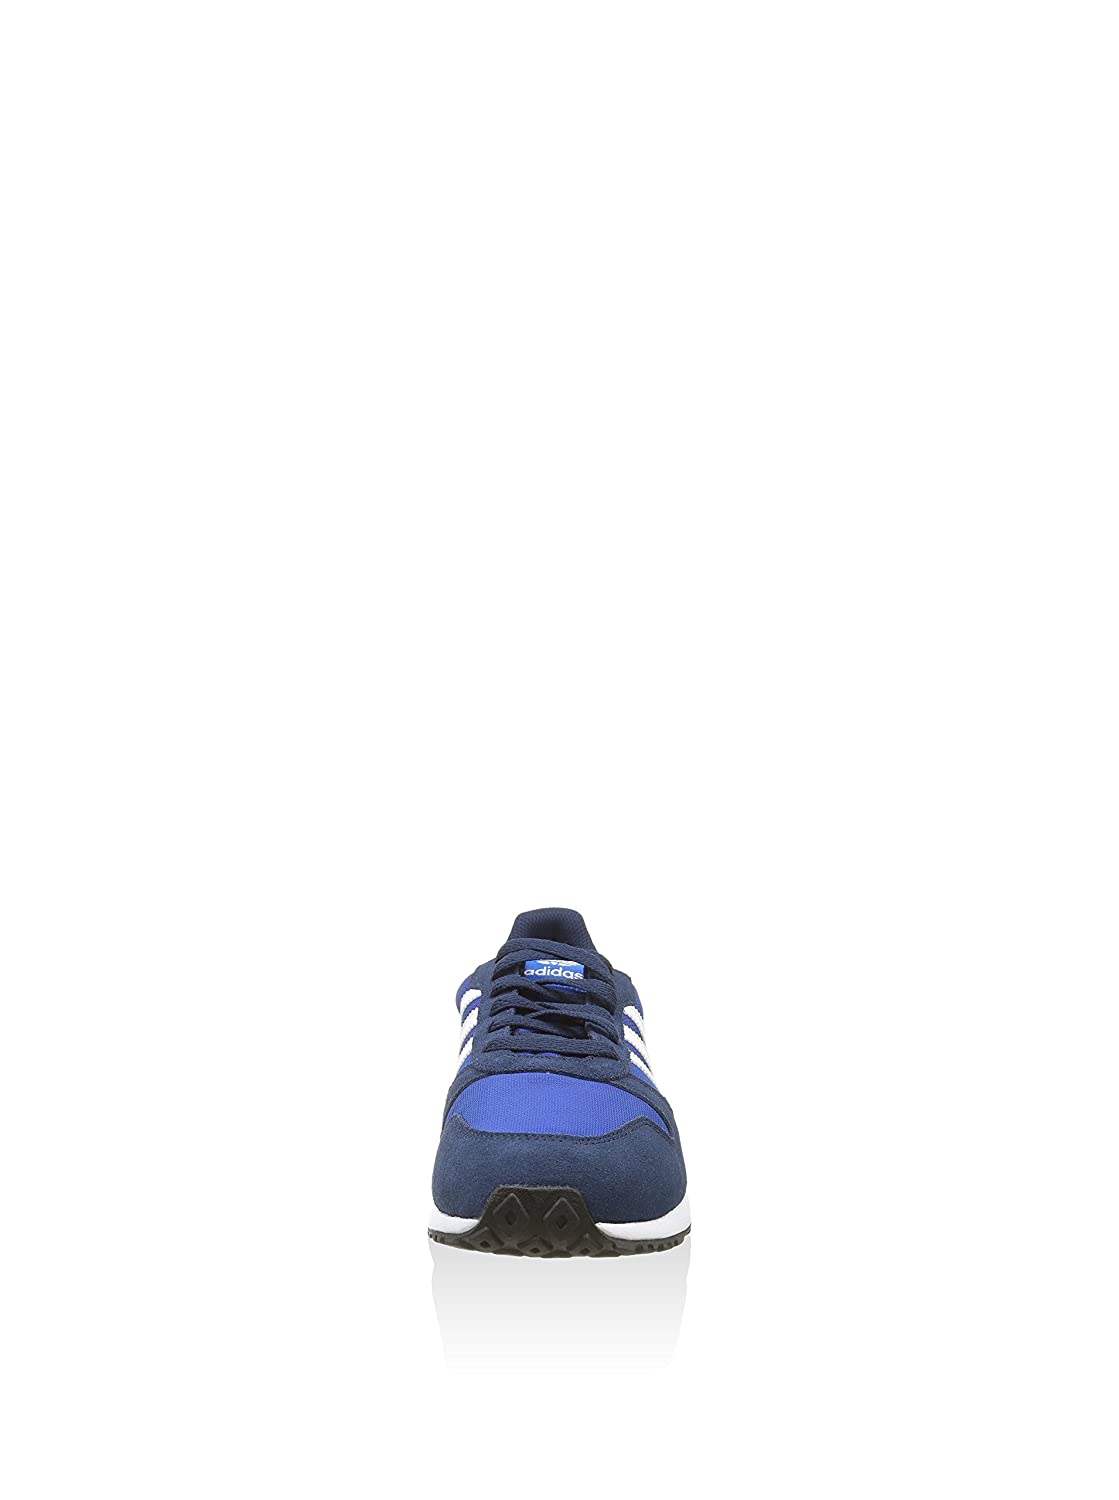 cheap for discount 63f21 9543c Amazon.com Adidas - SL Street - M19153 - Color Navy blue - Size 11.0  Shoes